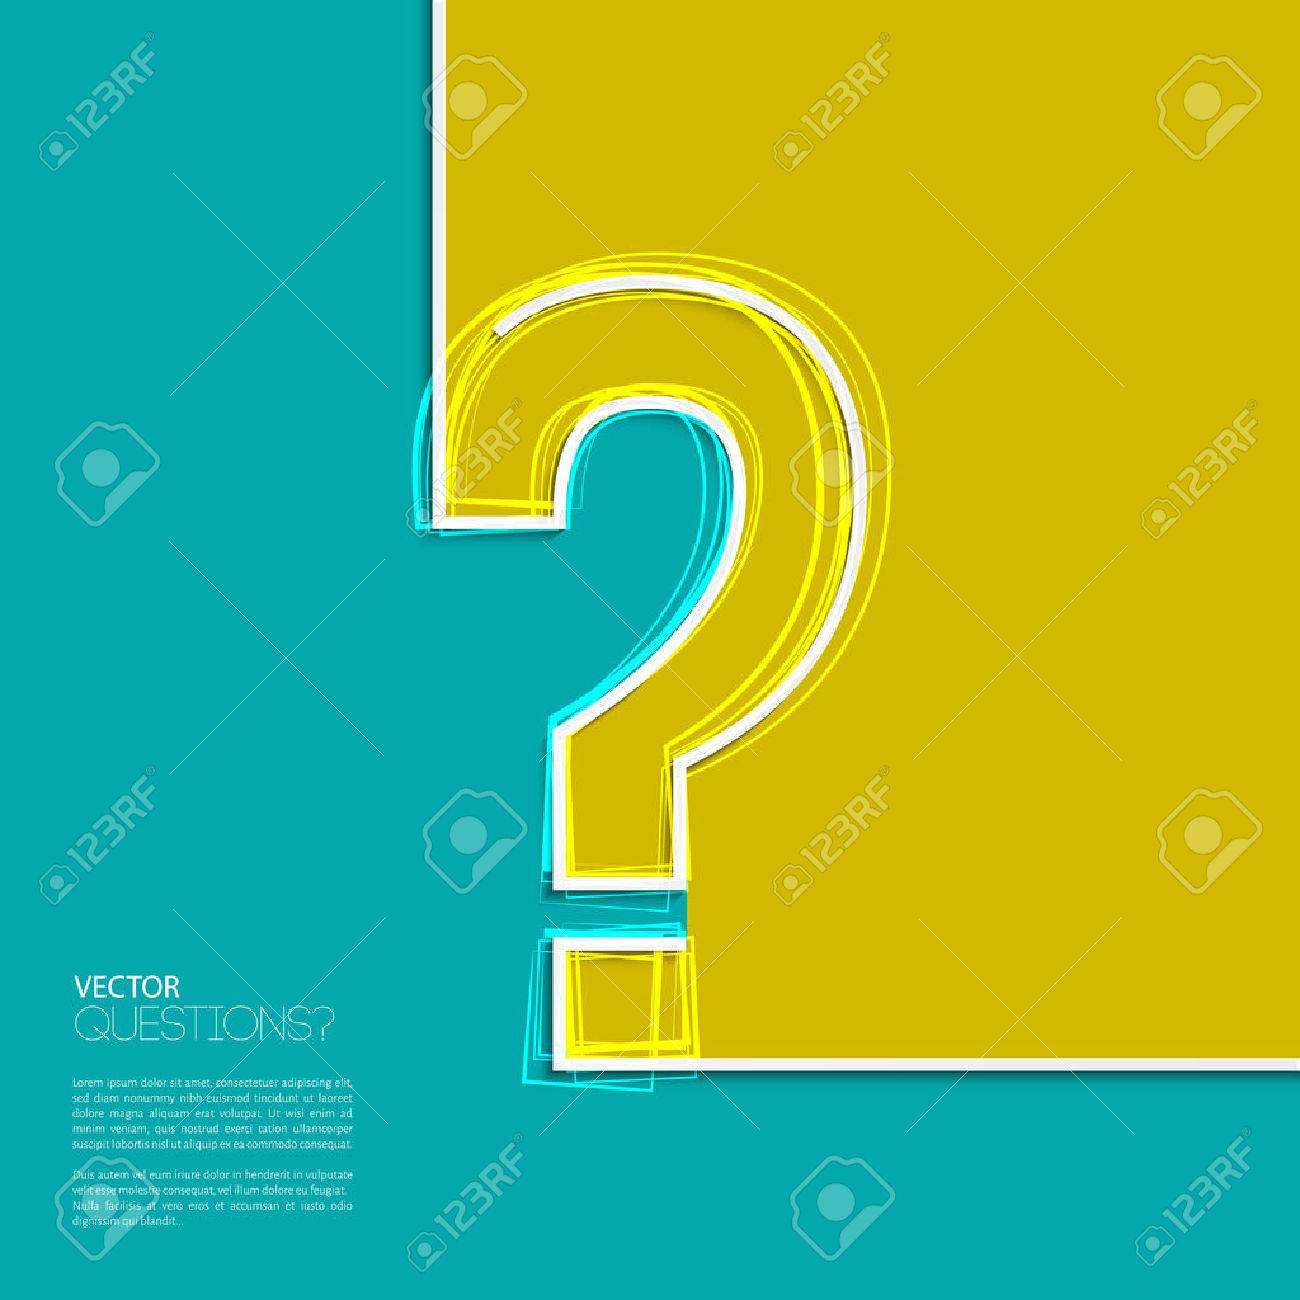 Question mark icon in flat design. - 32562227